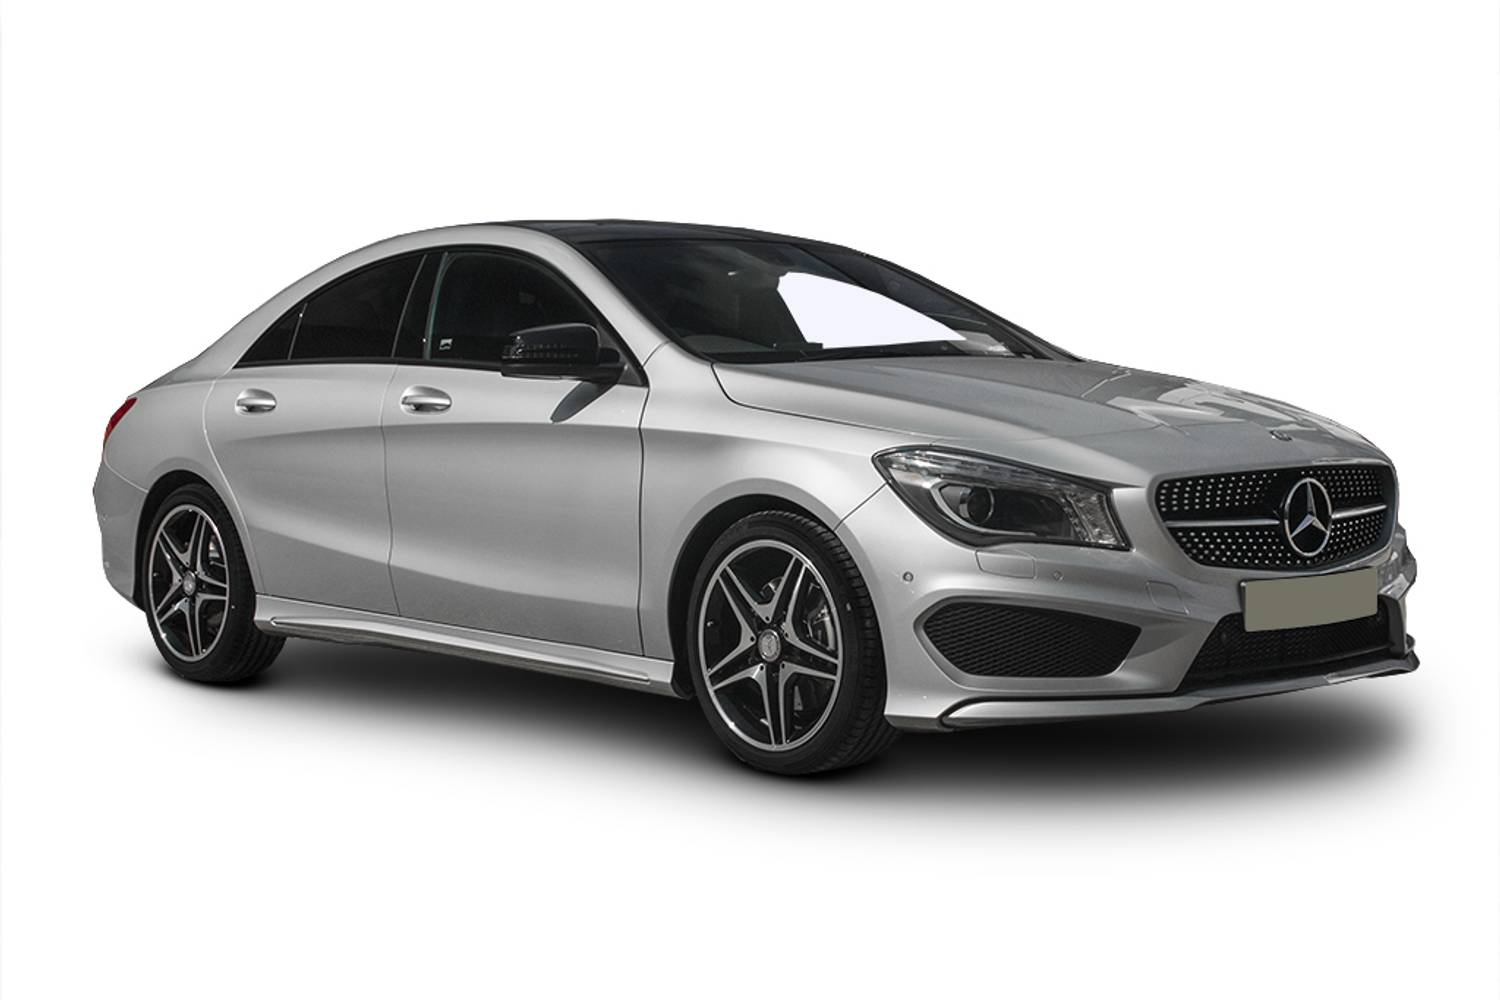 new mercedes benz cla class diesel coupe cla 220d amg line. Black Bedroom Furniture Sets. Home Design Ideas